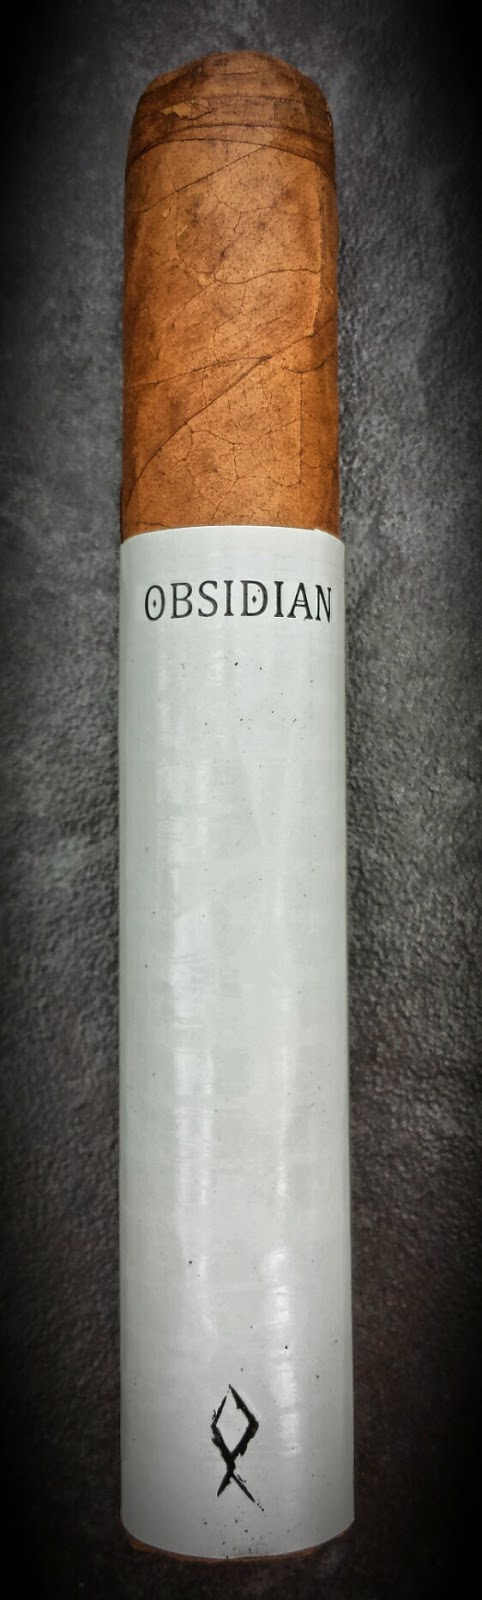 Obsidian White Noise Robusto Cigar